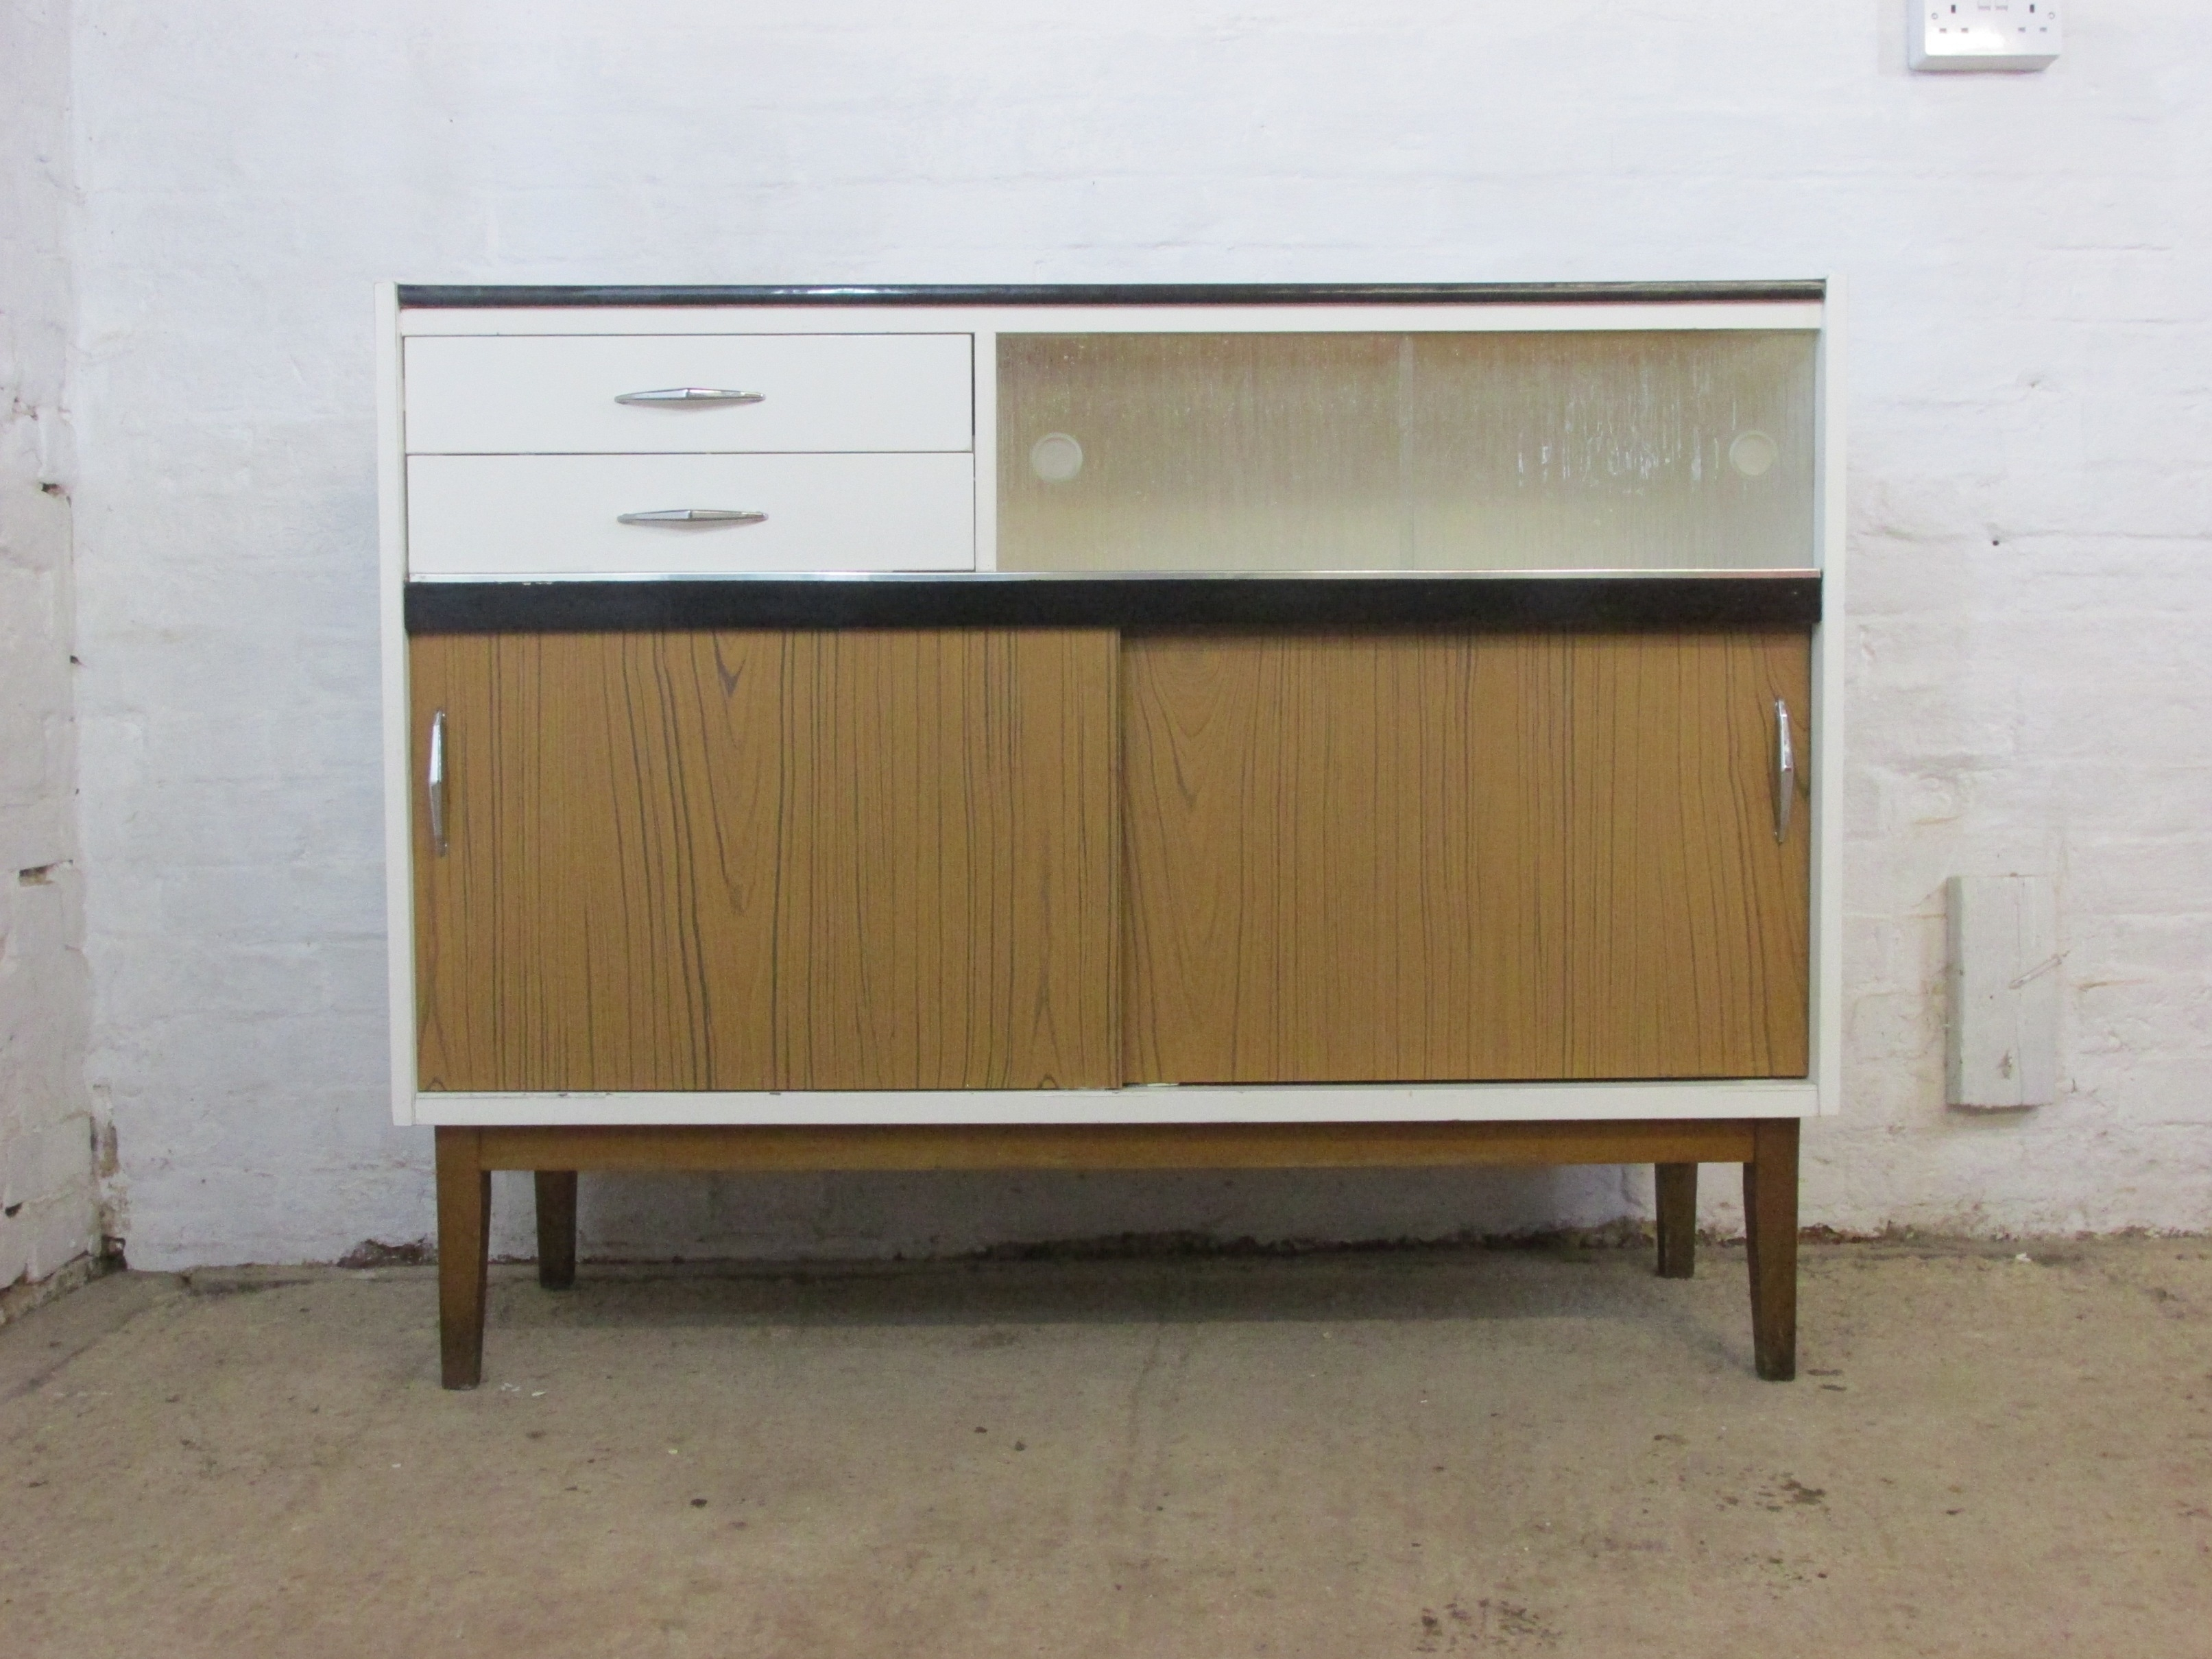 Inspiration about Retro Fortress Wood, Glass And Laminate Small Sideboard Or Kitchen Pertaining To Most Recent Vintage 8 Glass Sideboards (#17 of 20)